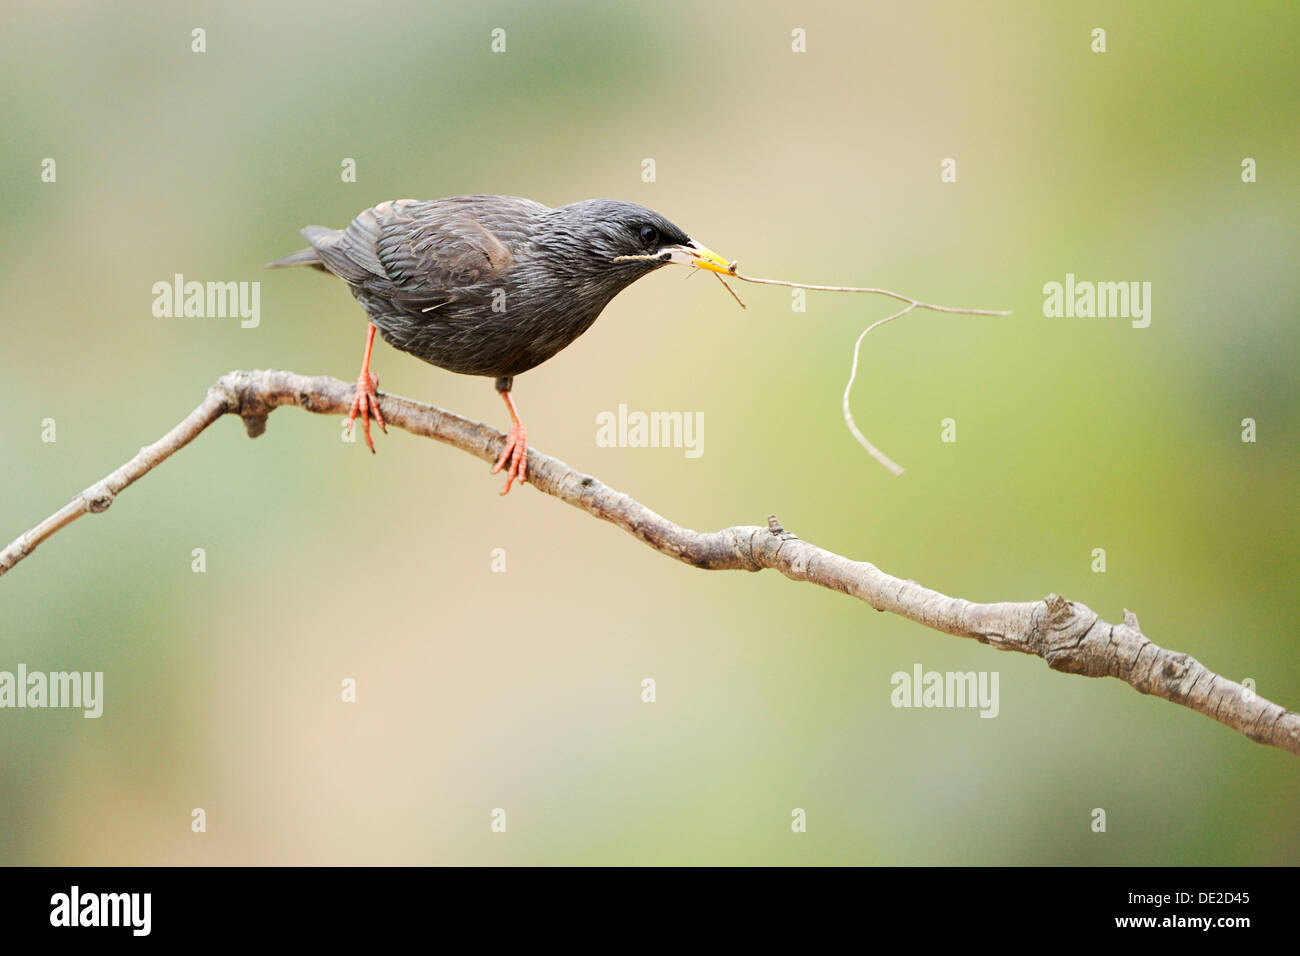 Spotless Starling (Sturnus unicolor), perched on twig with nesting material in beak Stock Photo